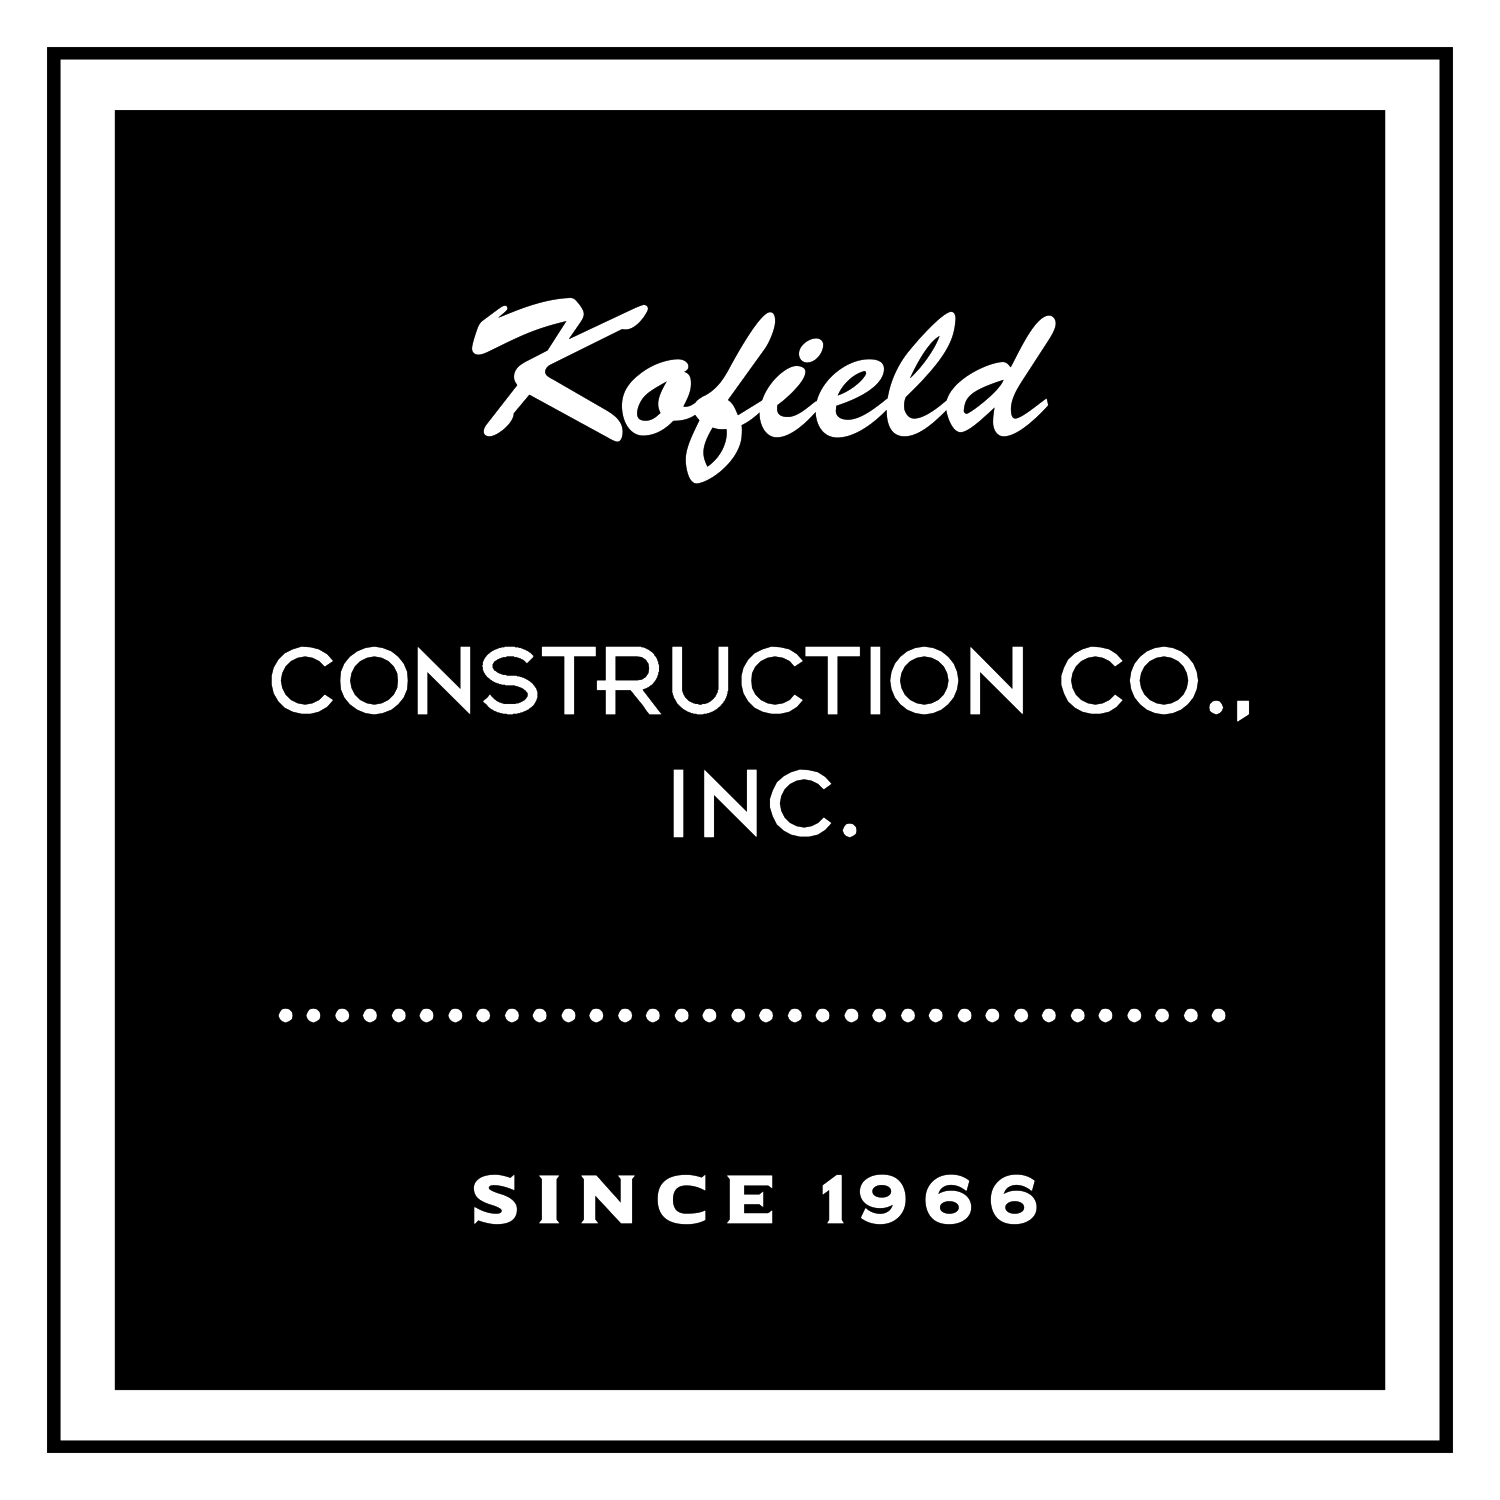 Kofield Construction